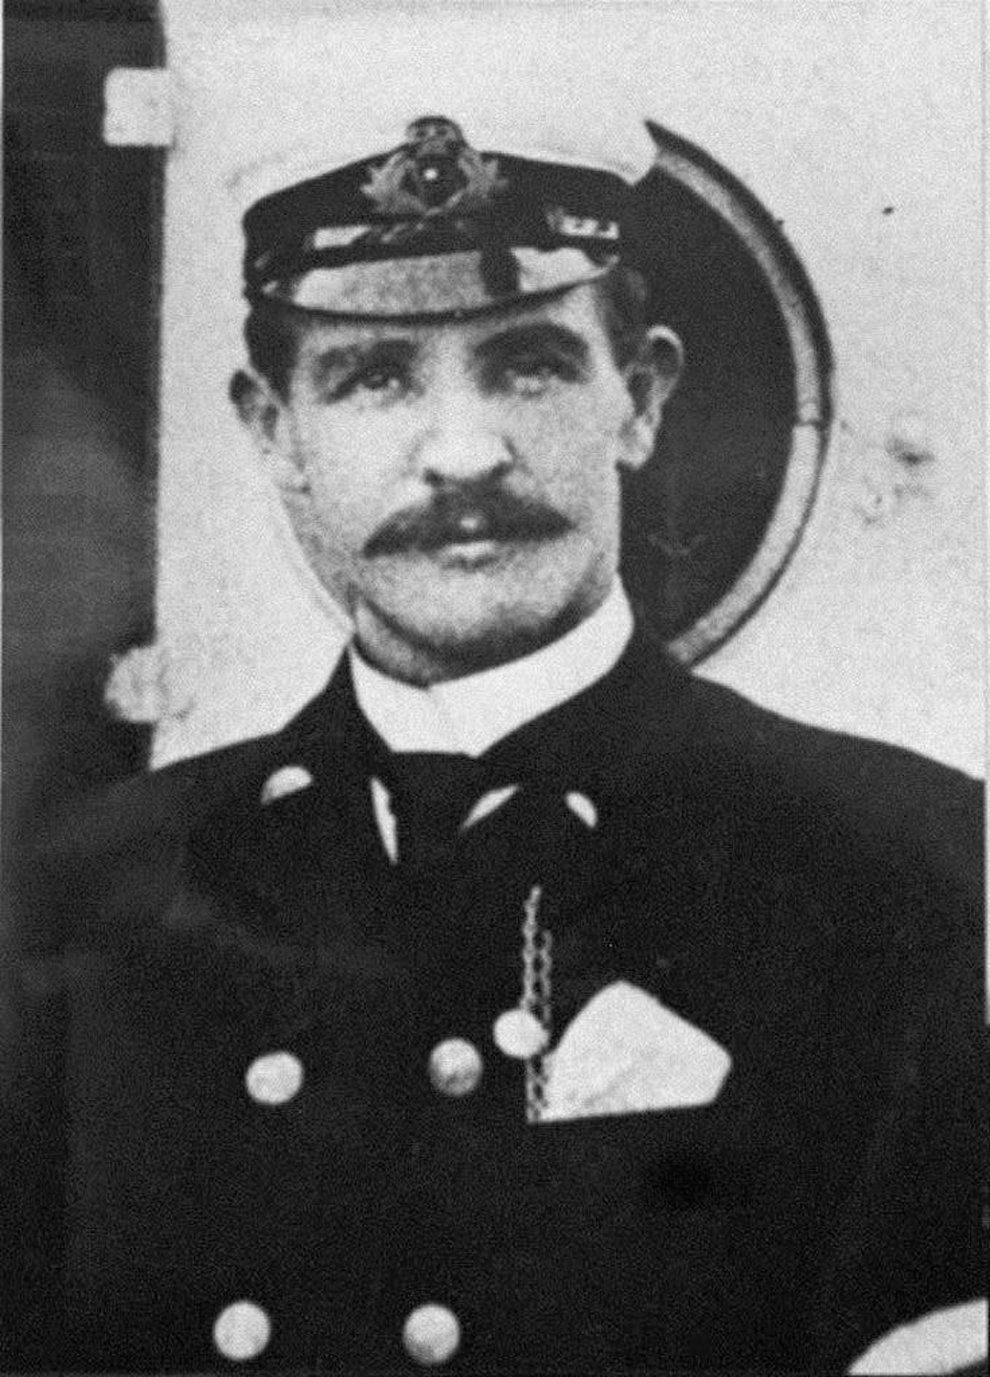 William Mcmaster Murdoch The First Mate It Was He Who Carried The